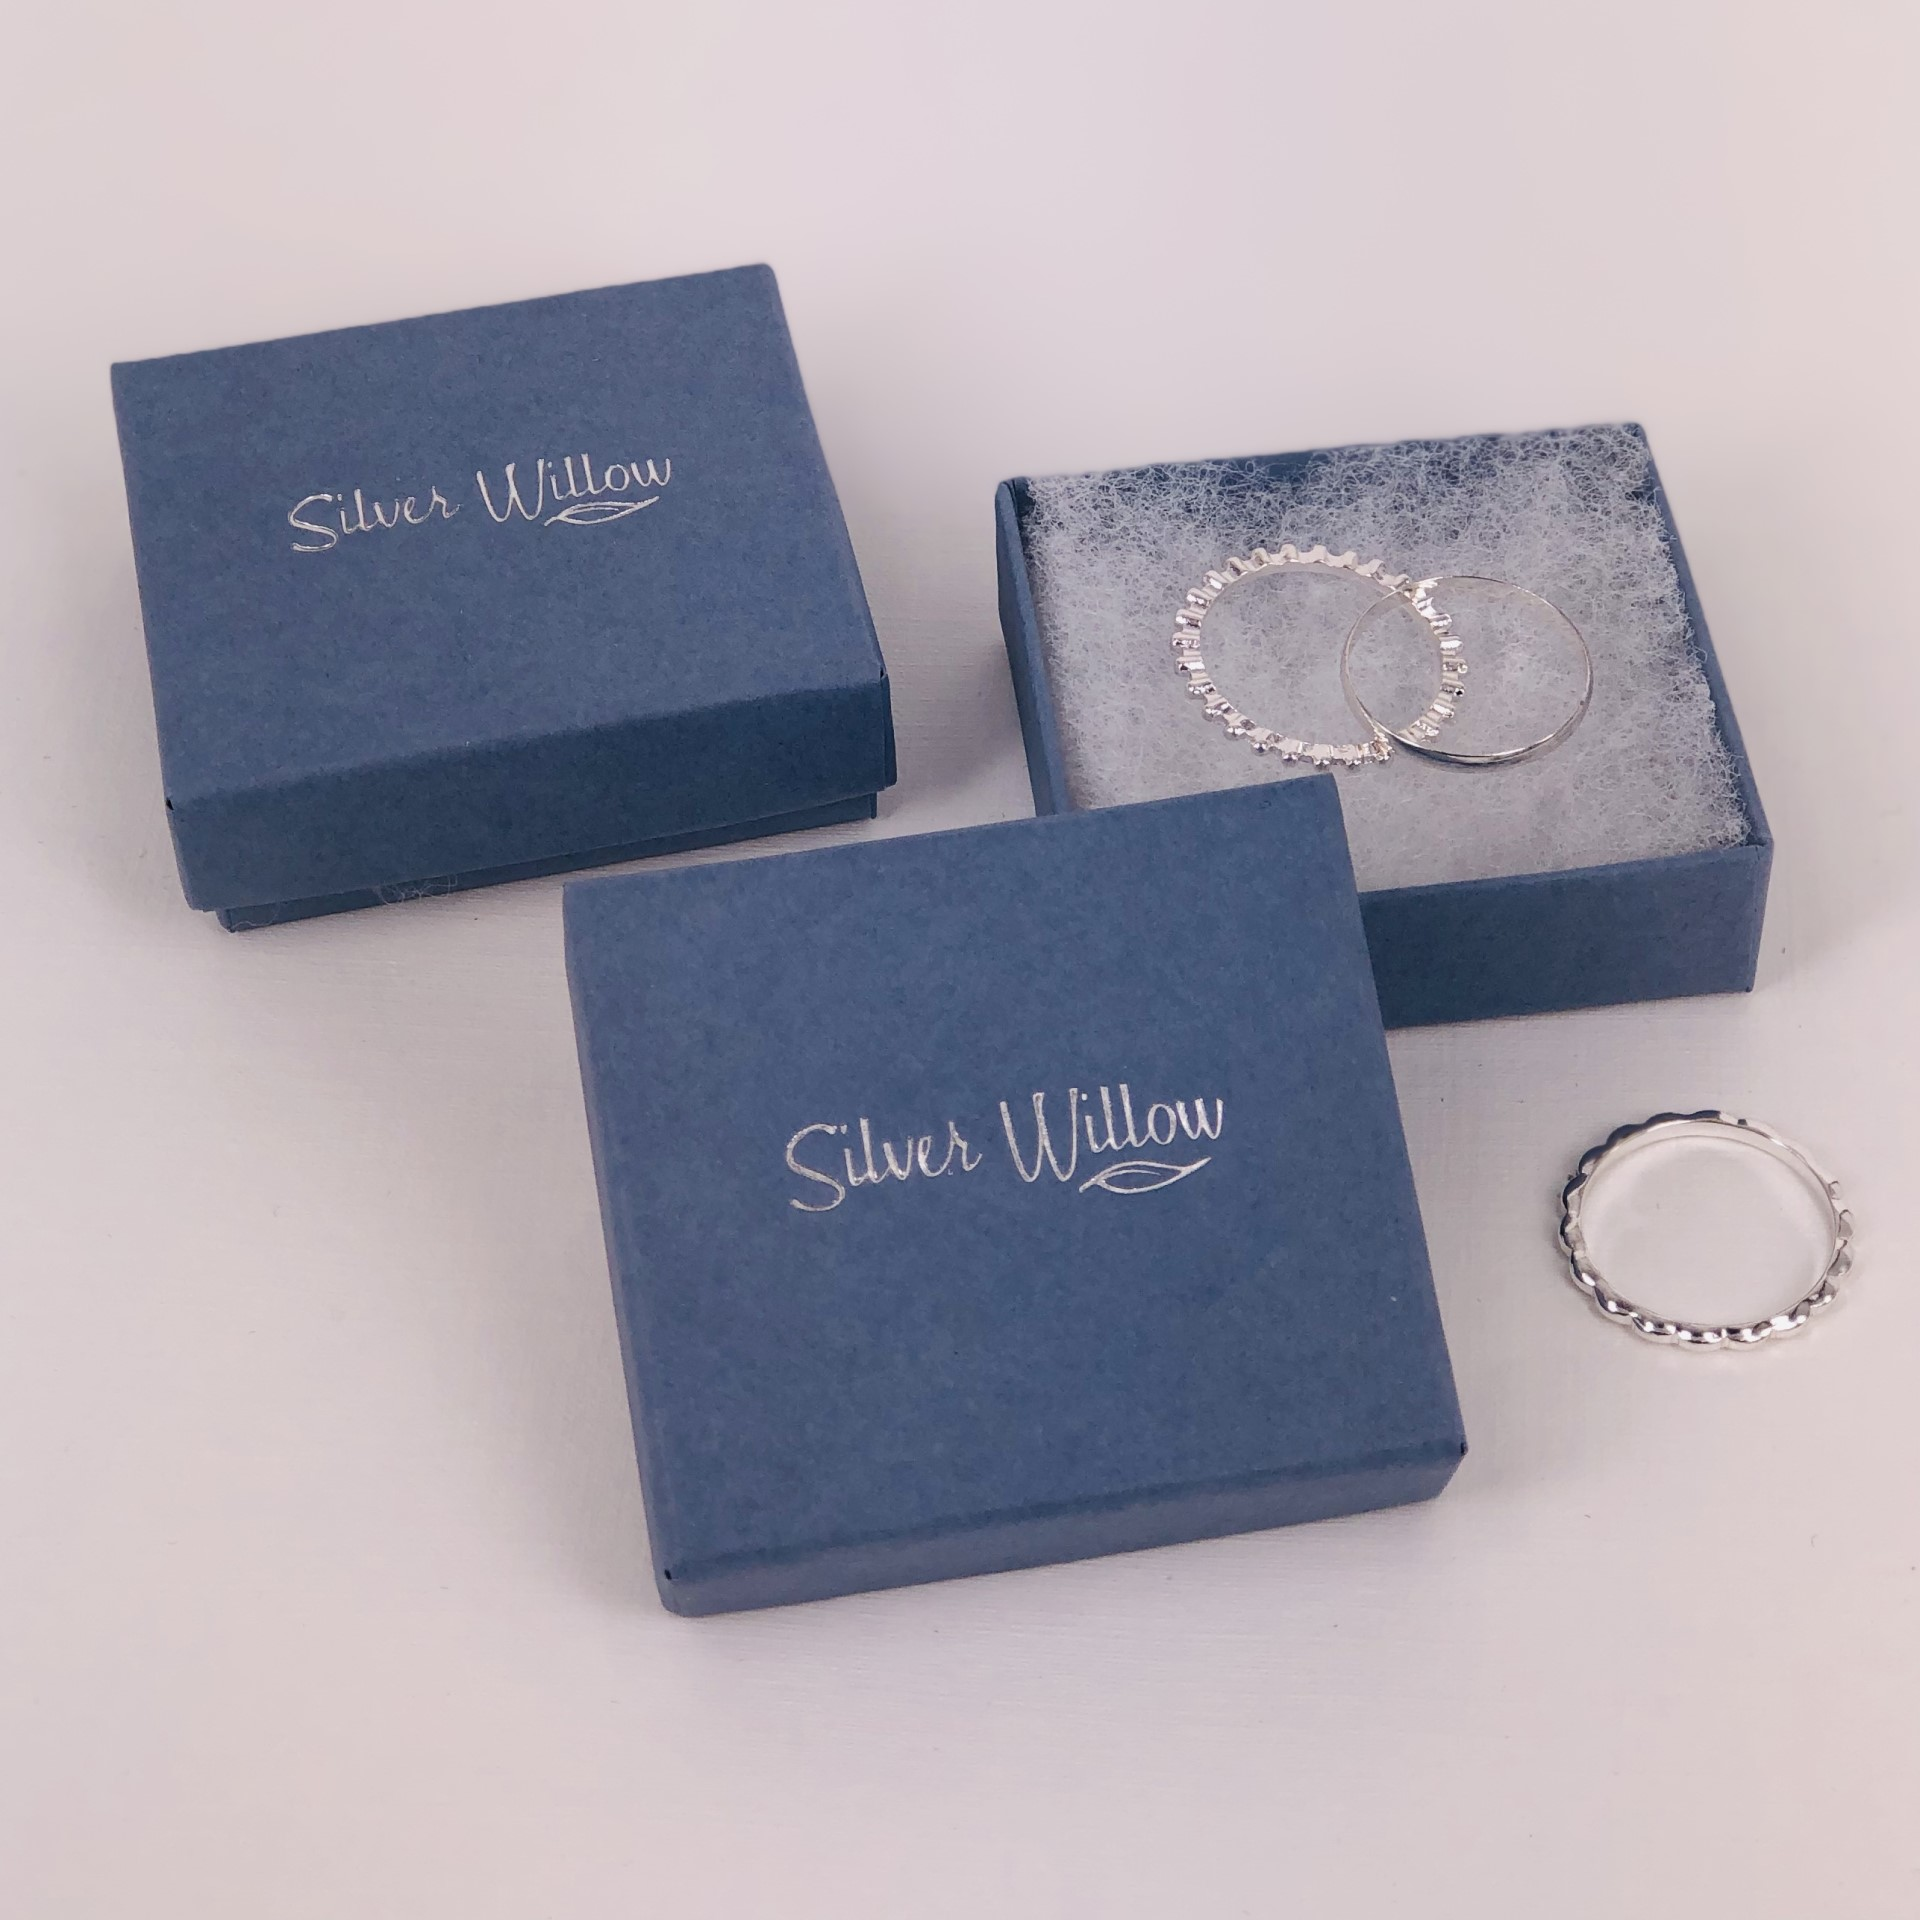 Silver Willow UK Made Cardboard Jewellery Boxes